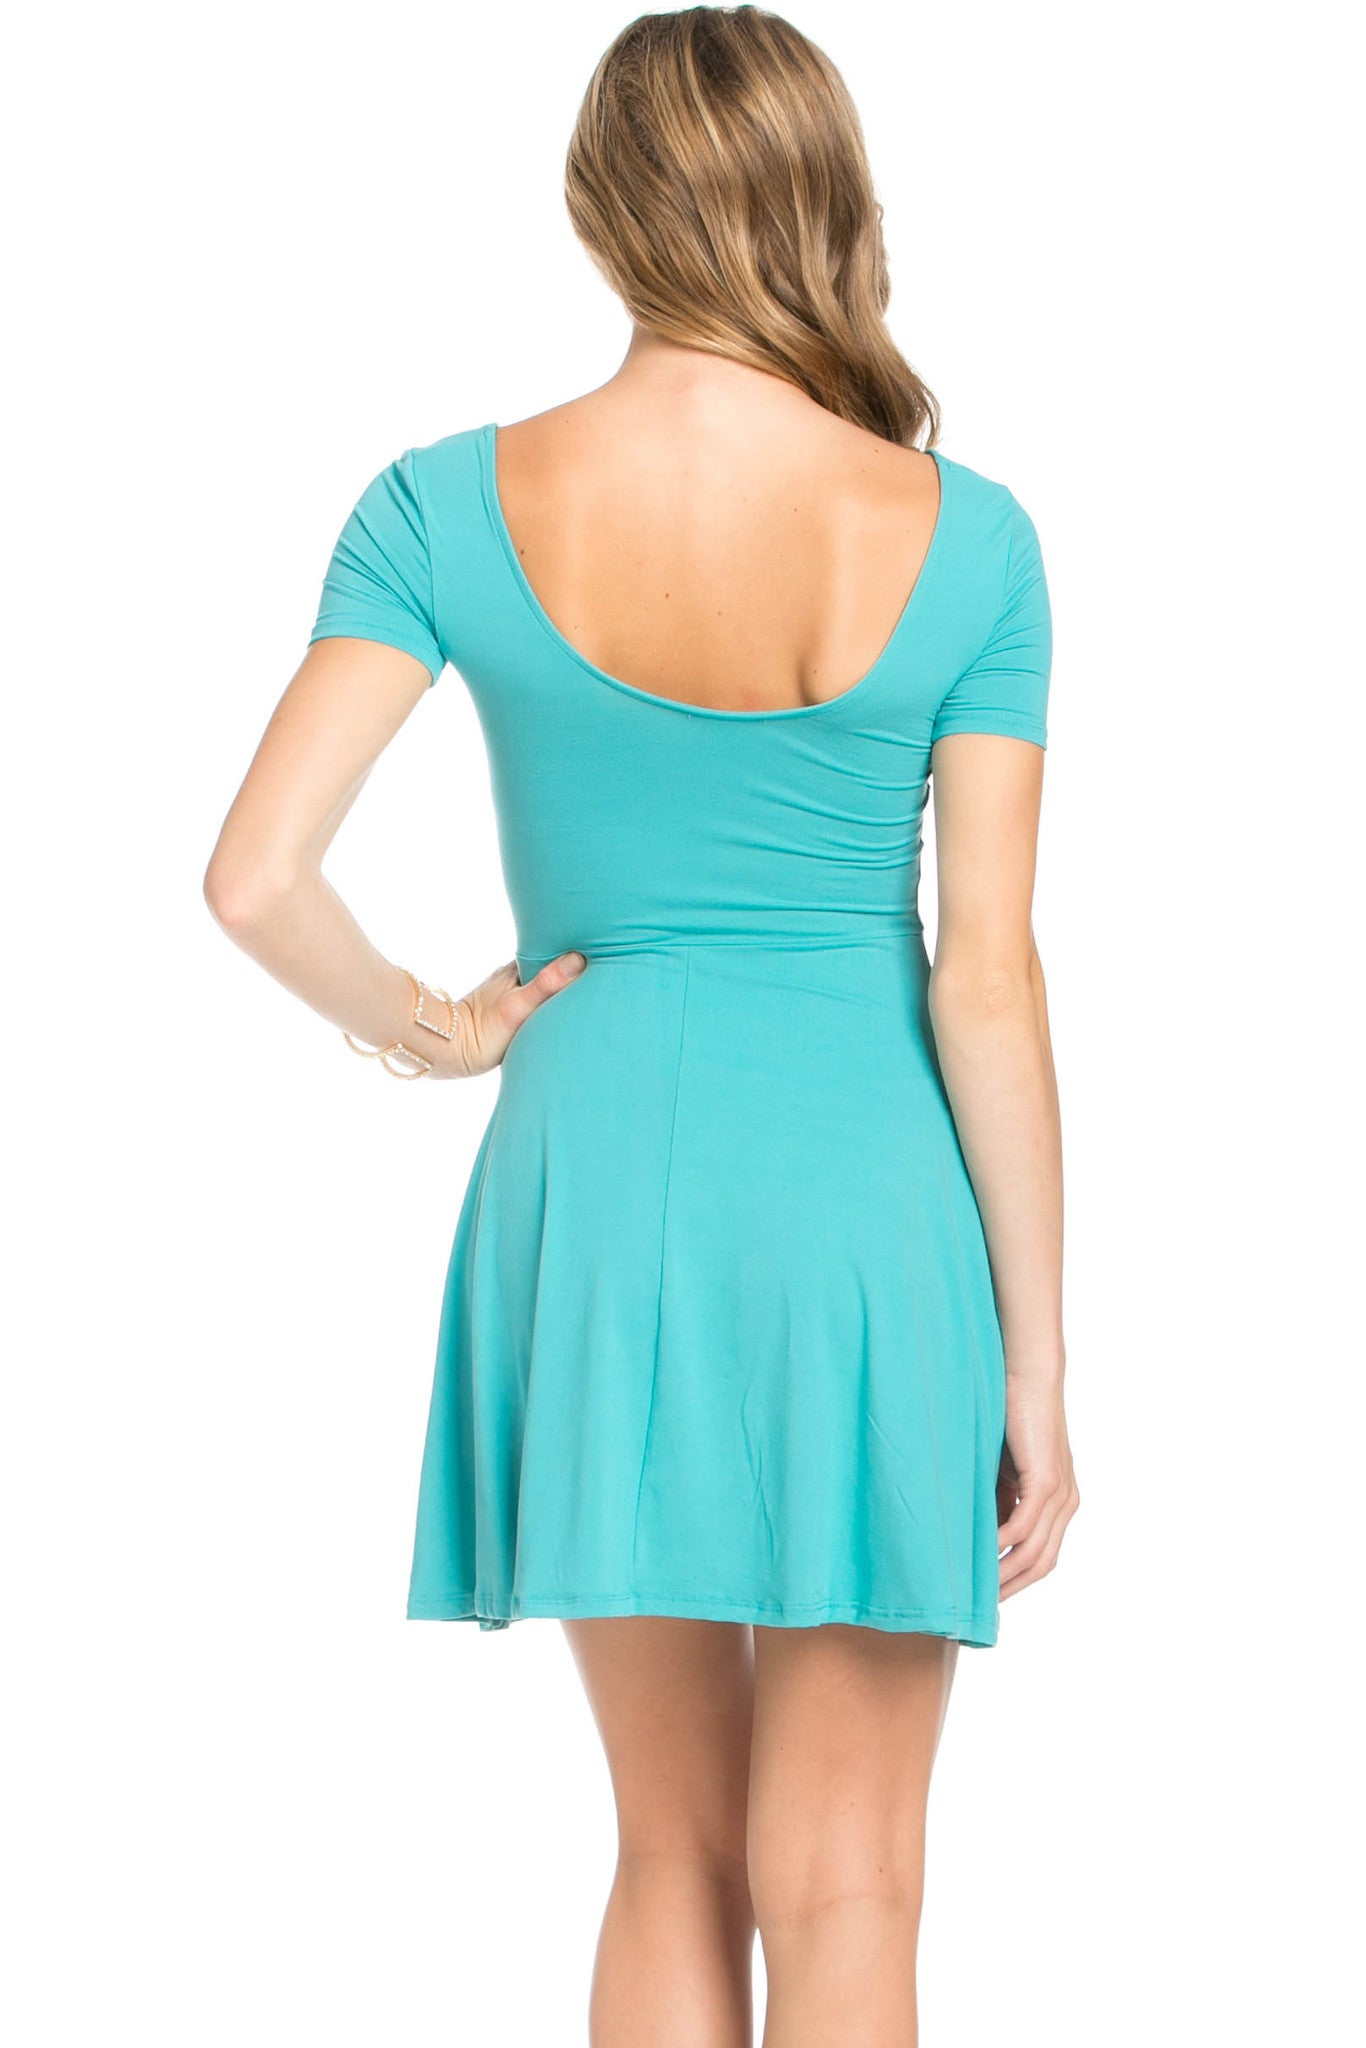 Micro Suede Jade Mini Dress - Dresses - My Yuccie - 3